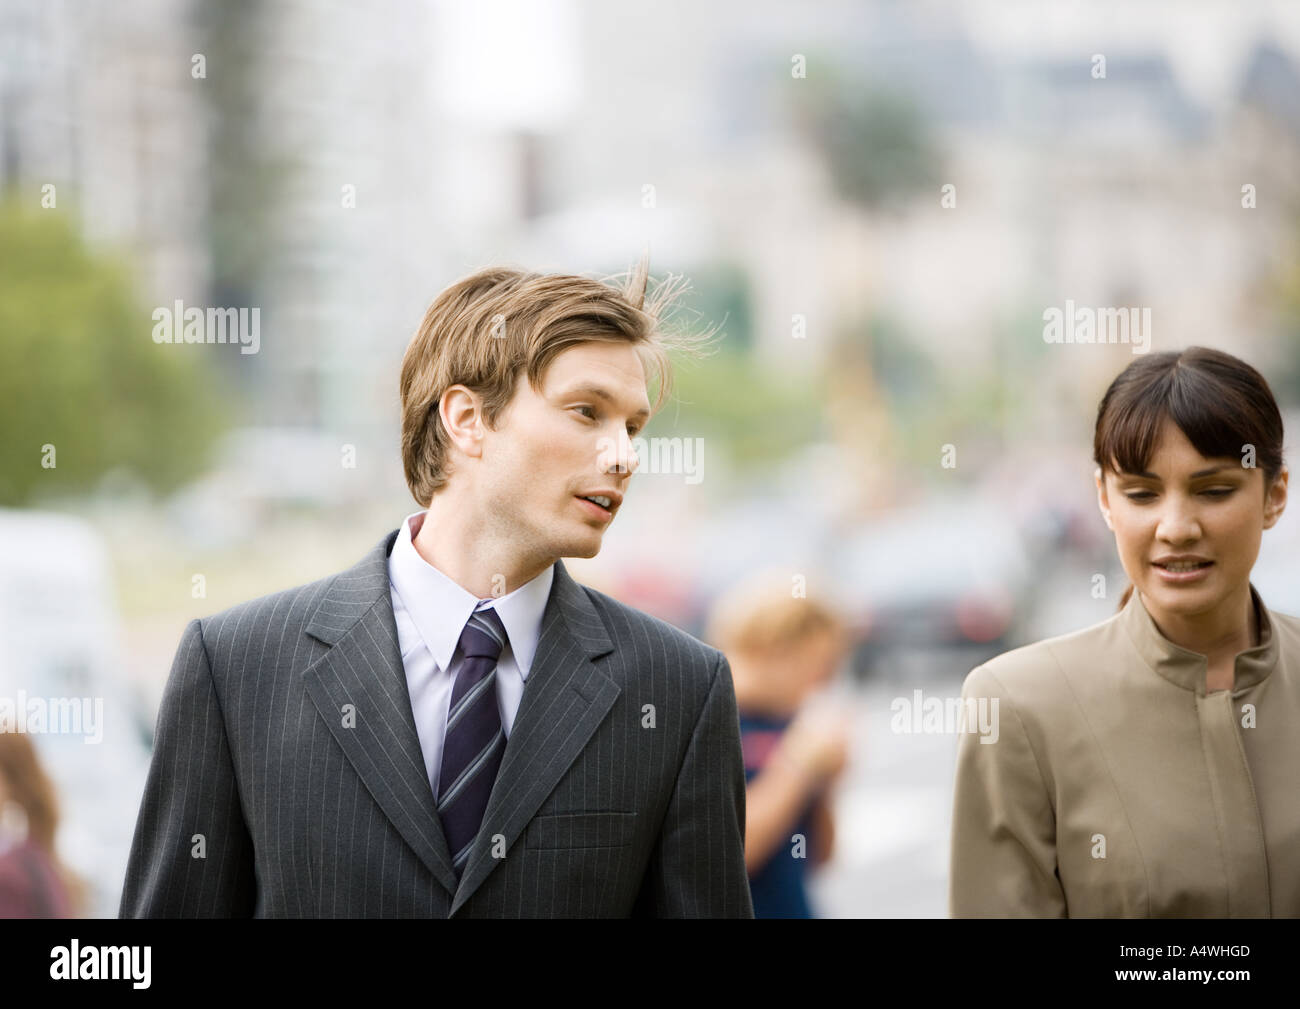 Businessman and woman chatting together - Stock Image